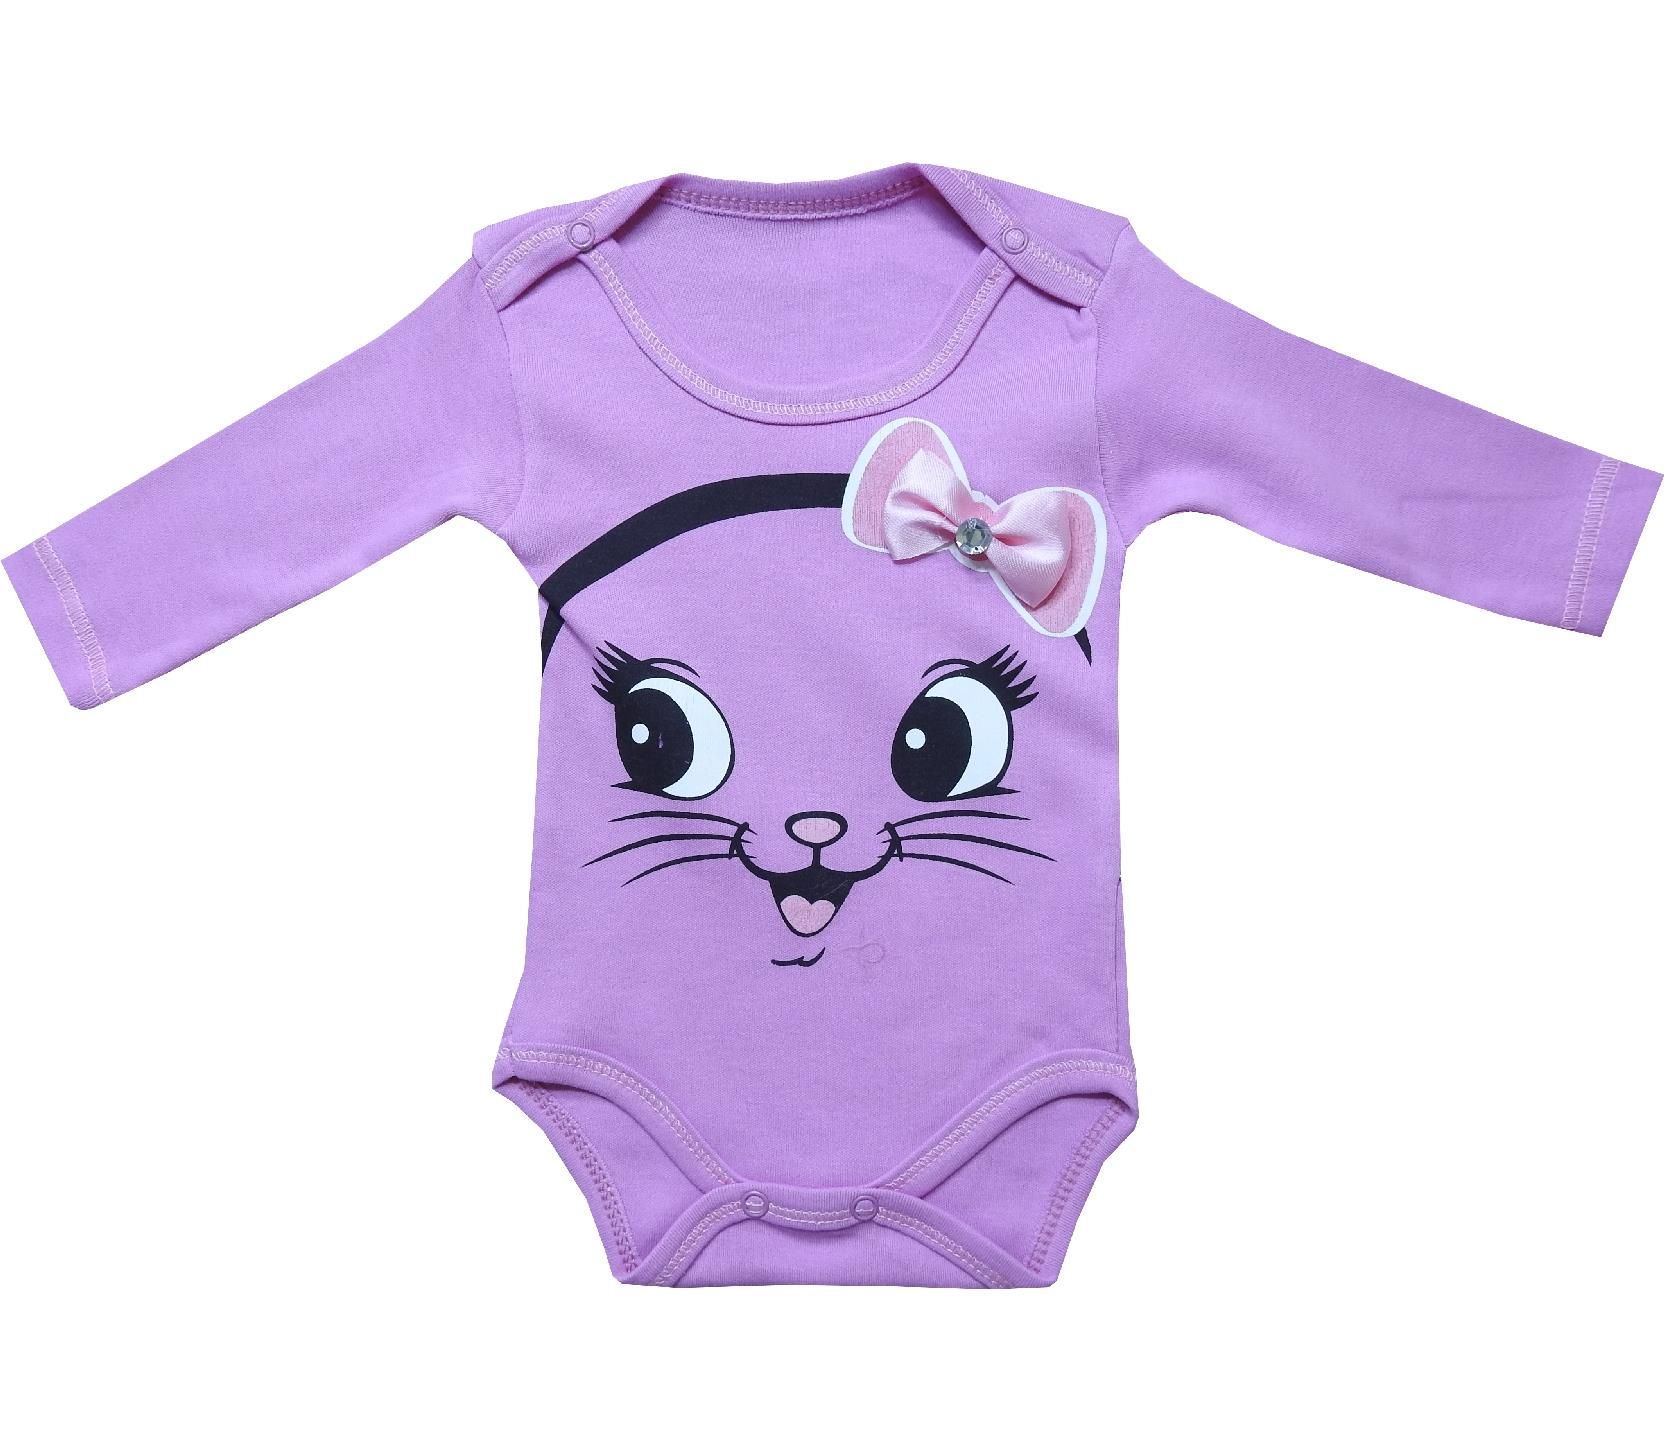 4616 wholesale cat face printed bodysuit for gilr baby clothes 3 6